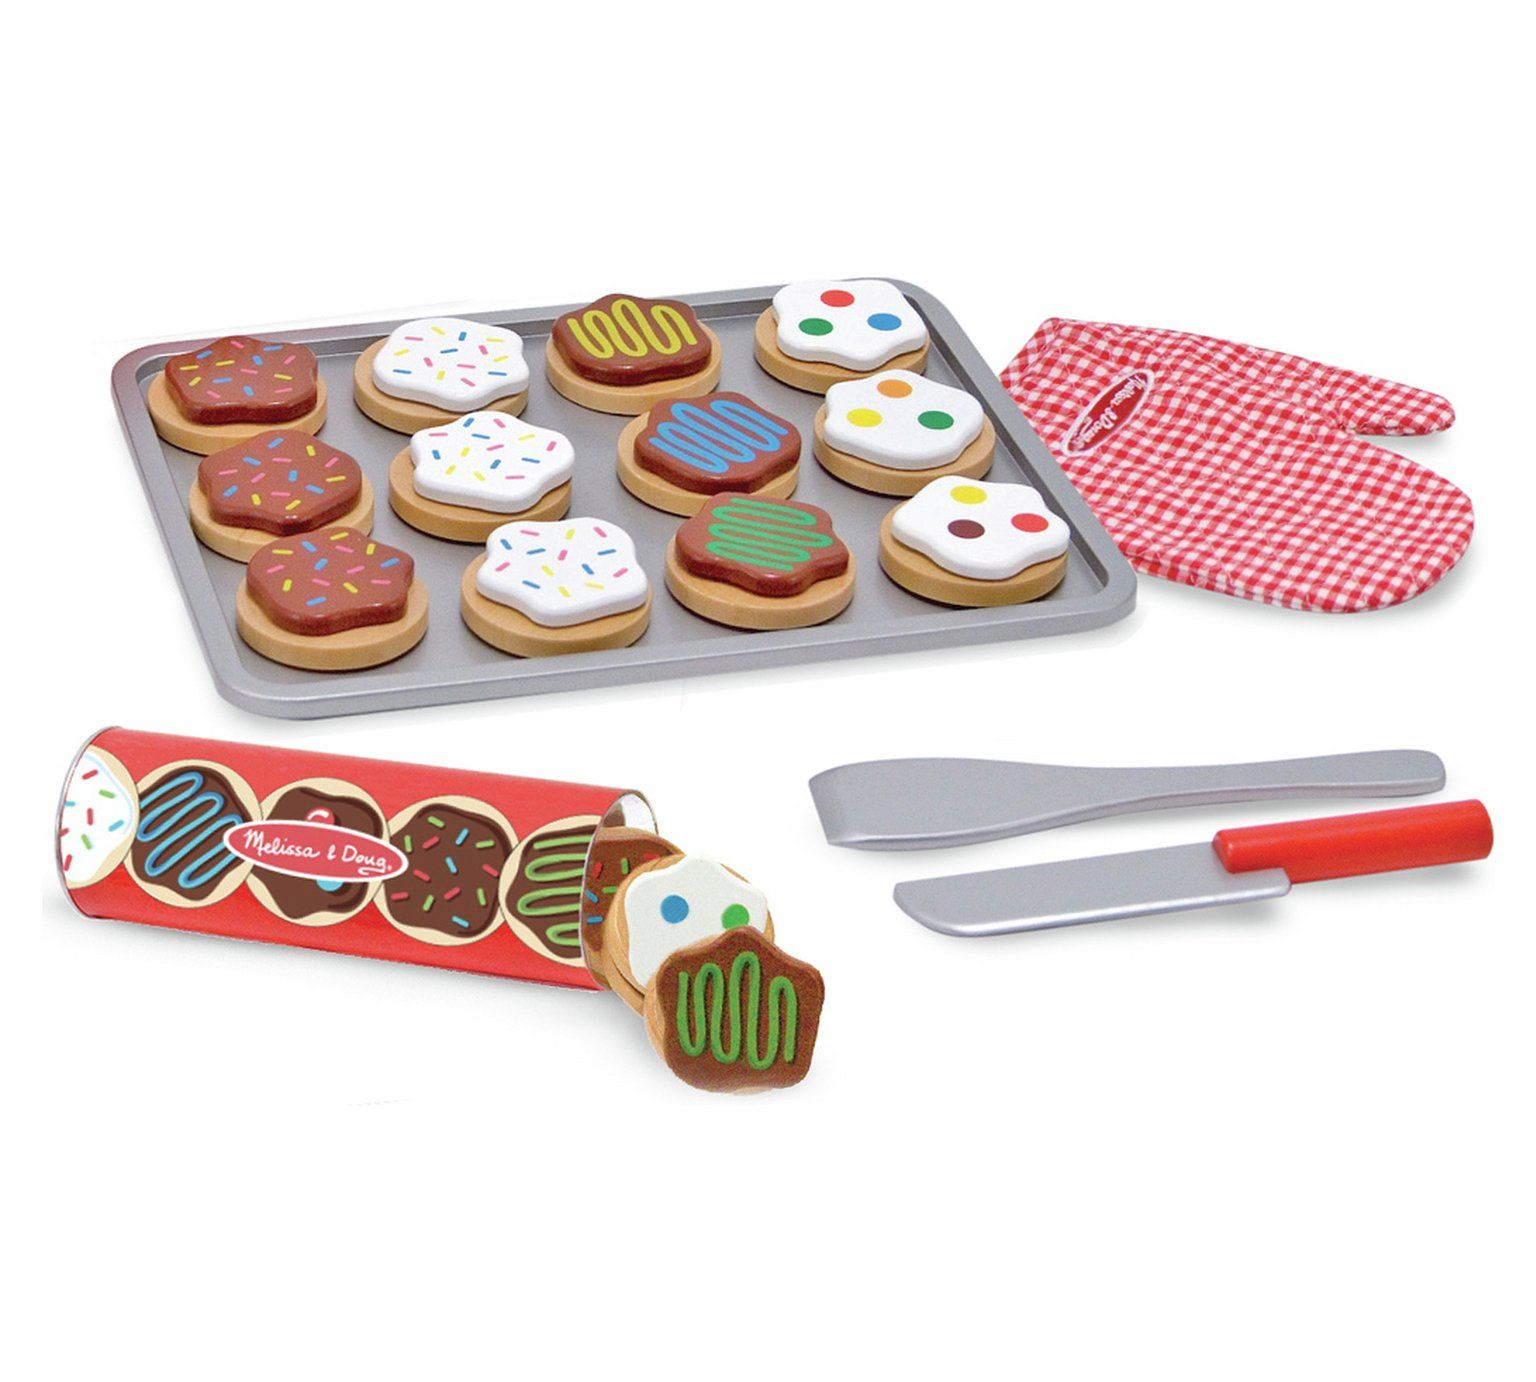 Buy melissa doug wooden cookie set role play toys no